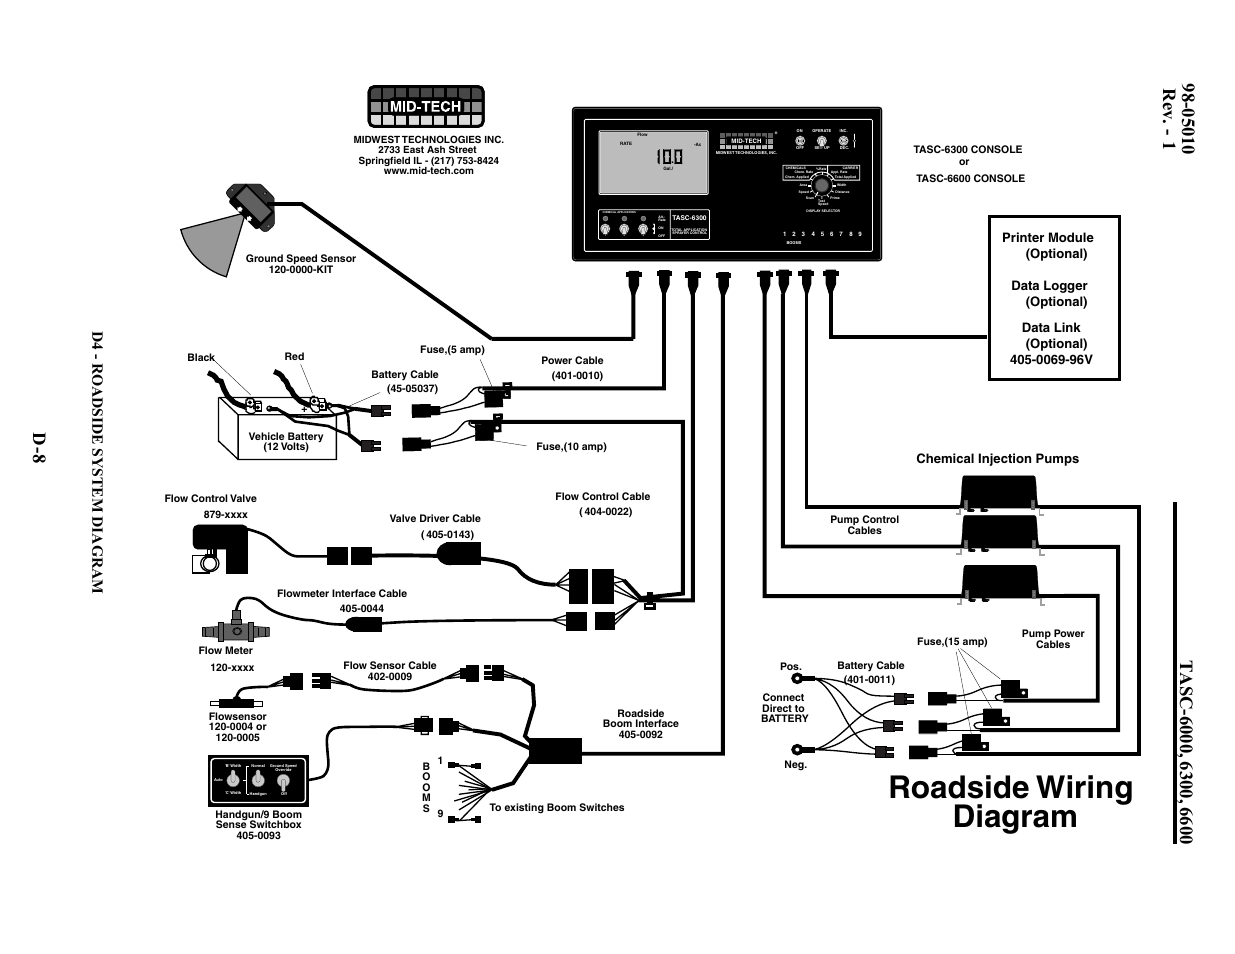 Manual Valve Diagram